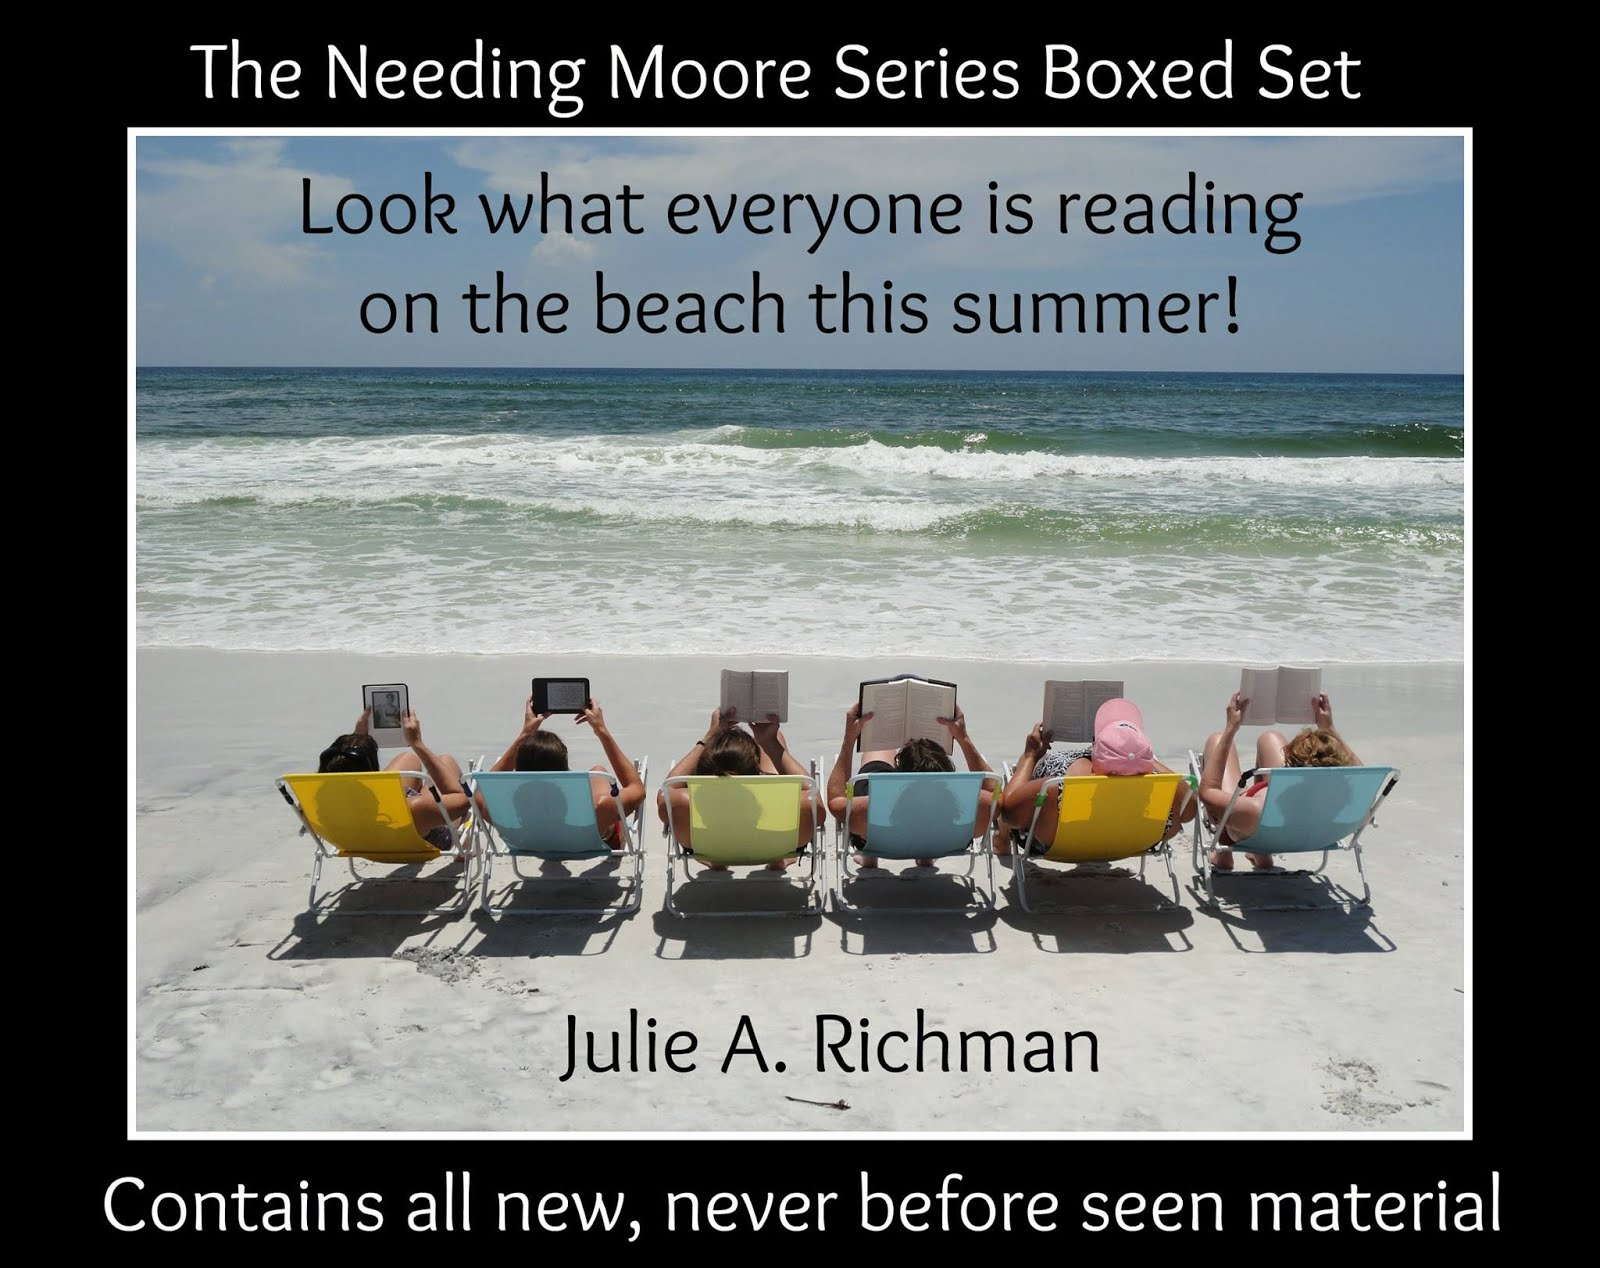 THE NEEDING MOORE BOX SET TEASER 1.jpg